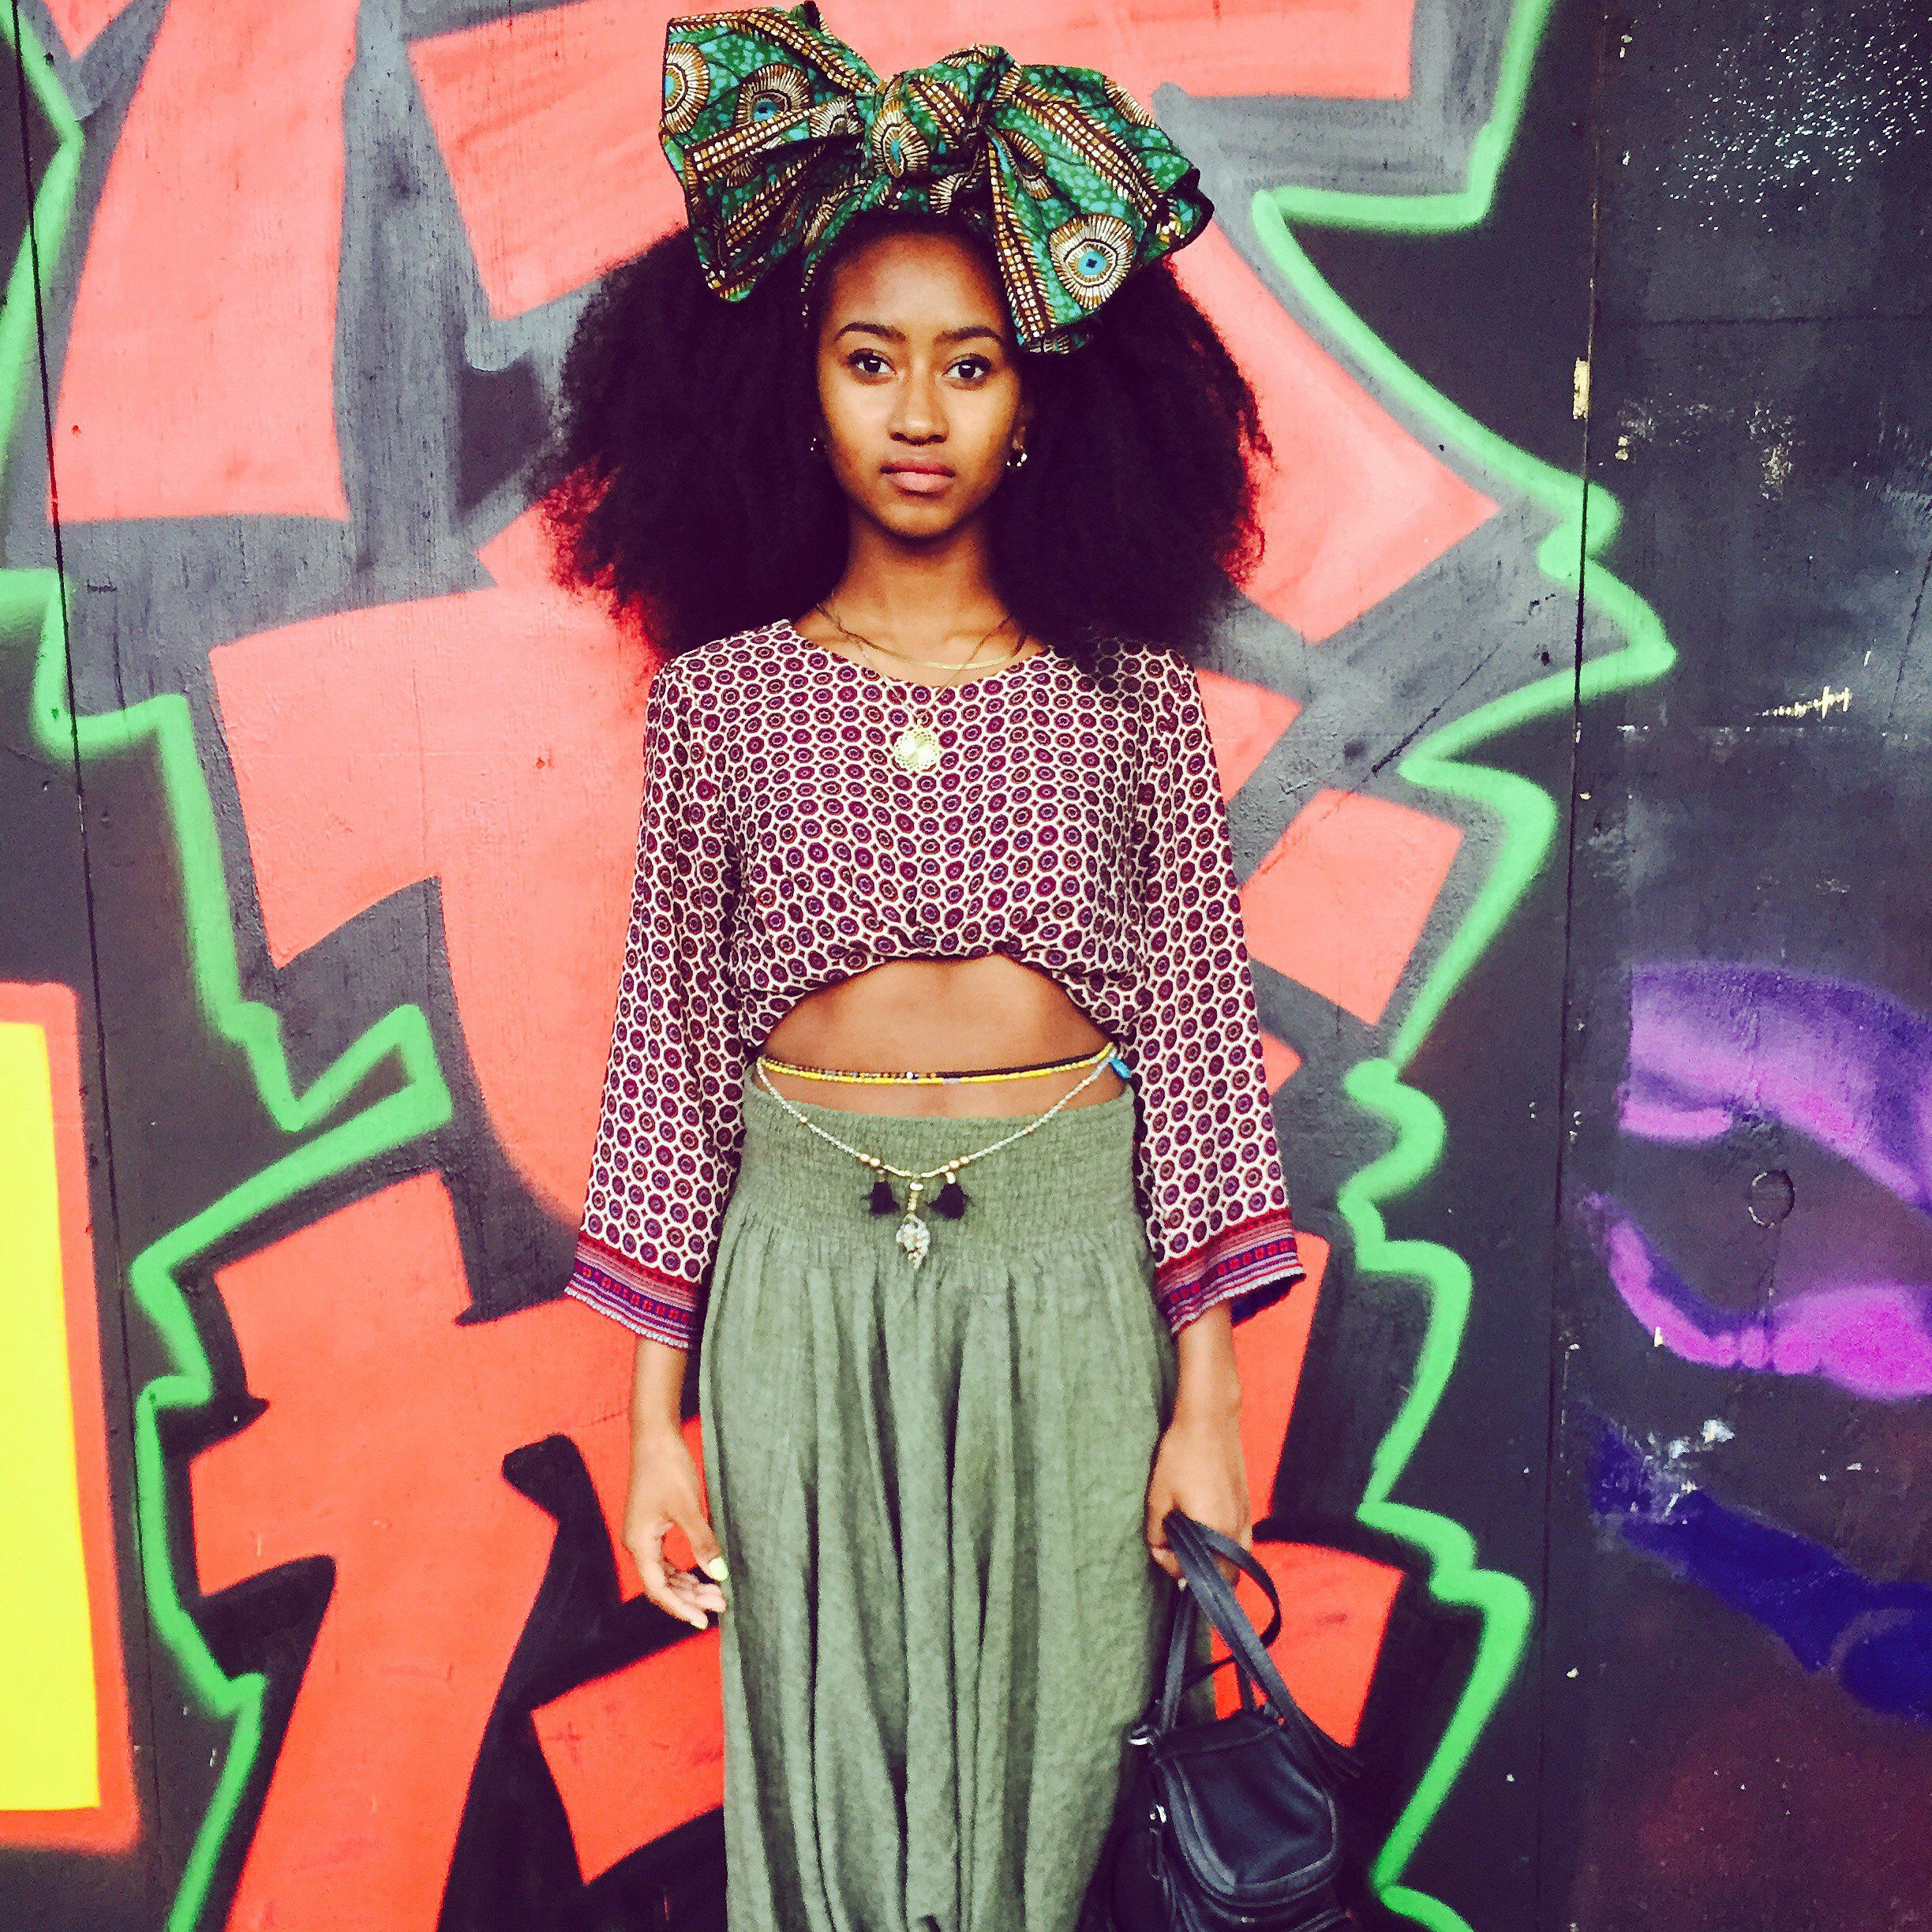 Afro Punk Fashion: The Best Looks From Afropunk's Fancy Dress Ball